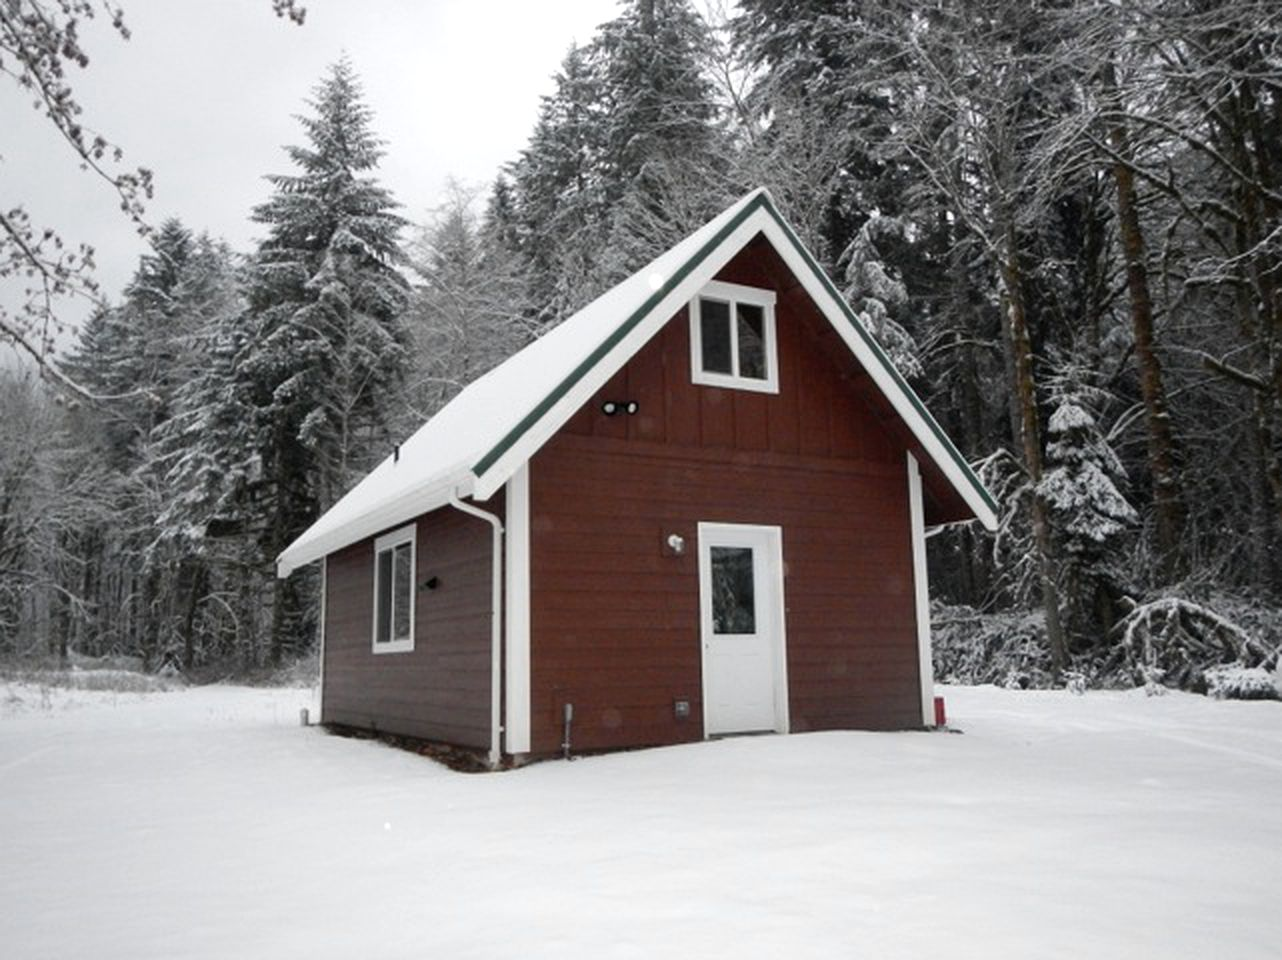 Cabins (Glacier, Washington, United States)